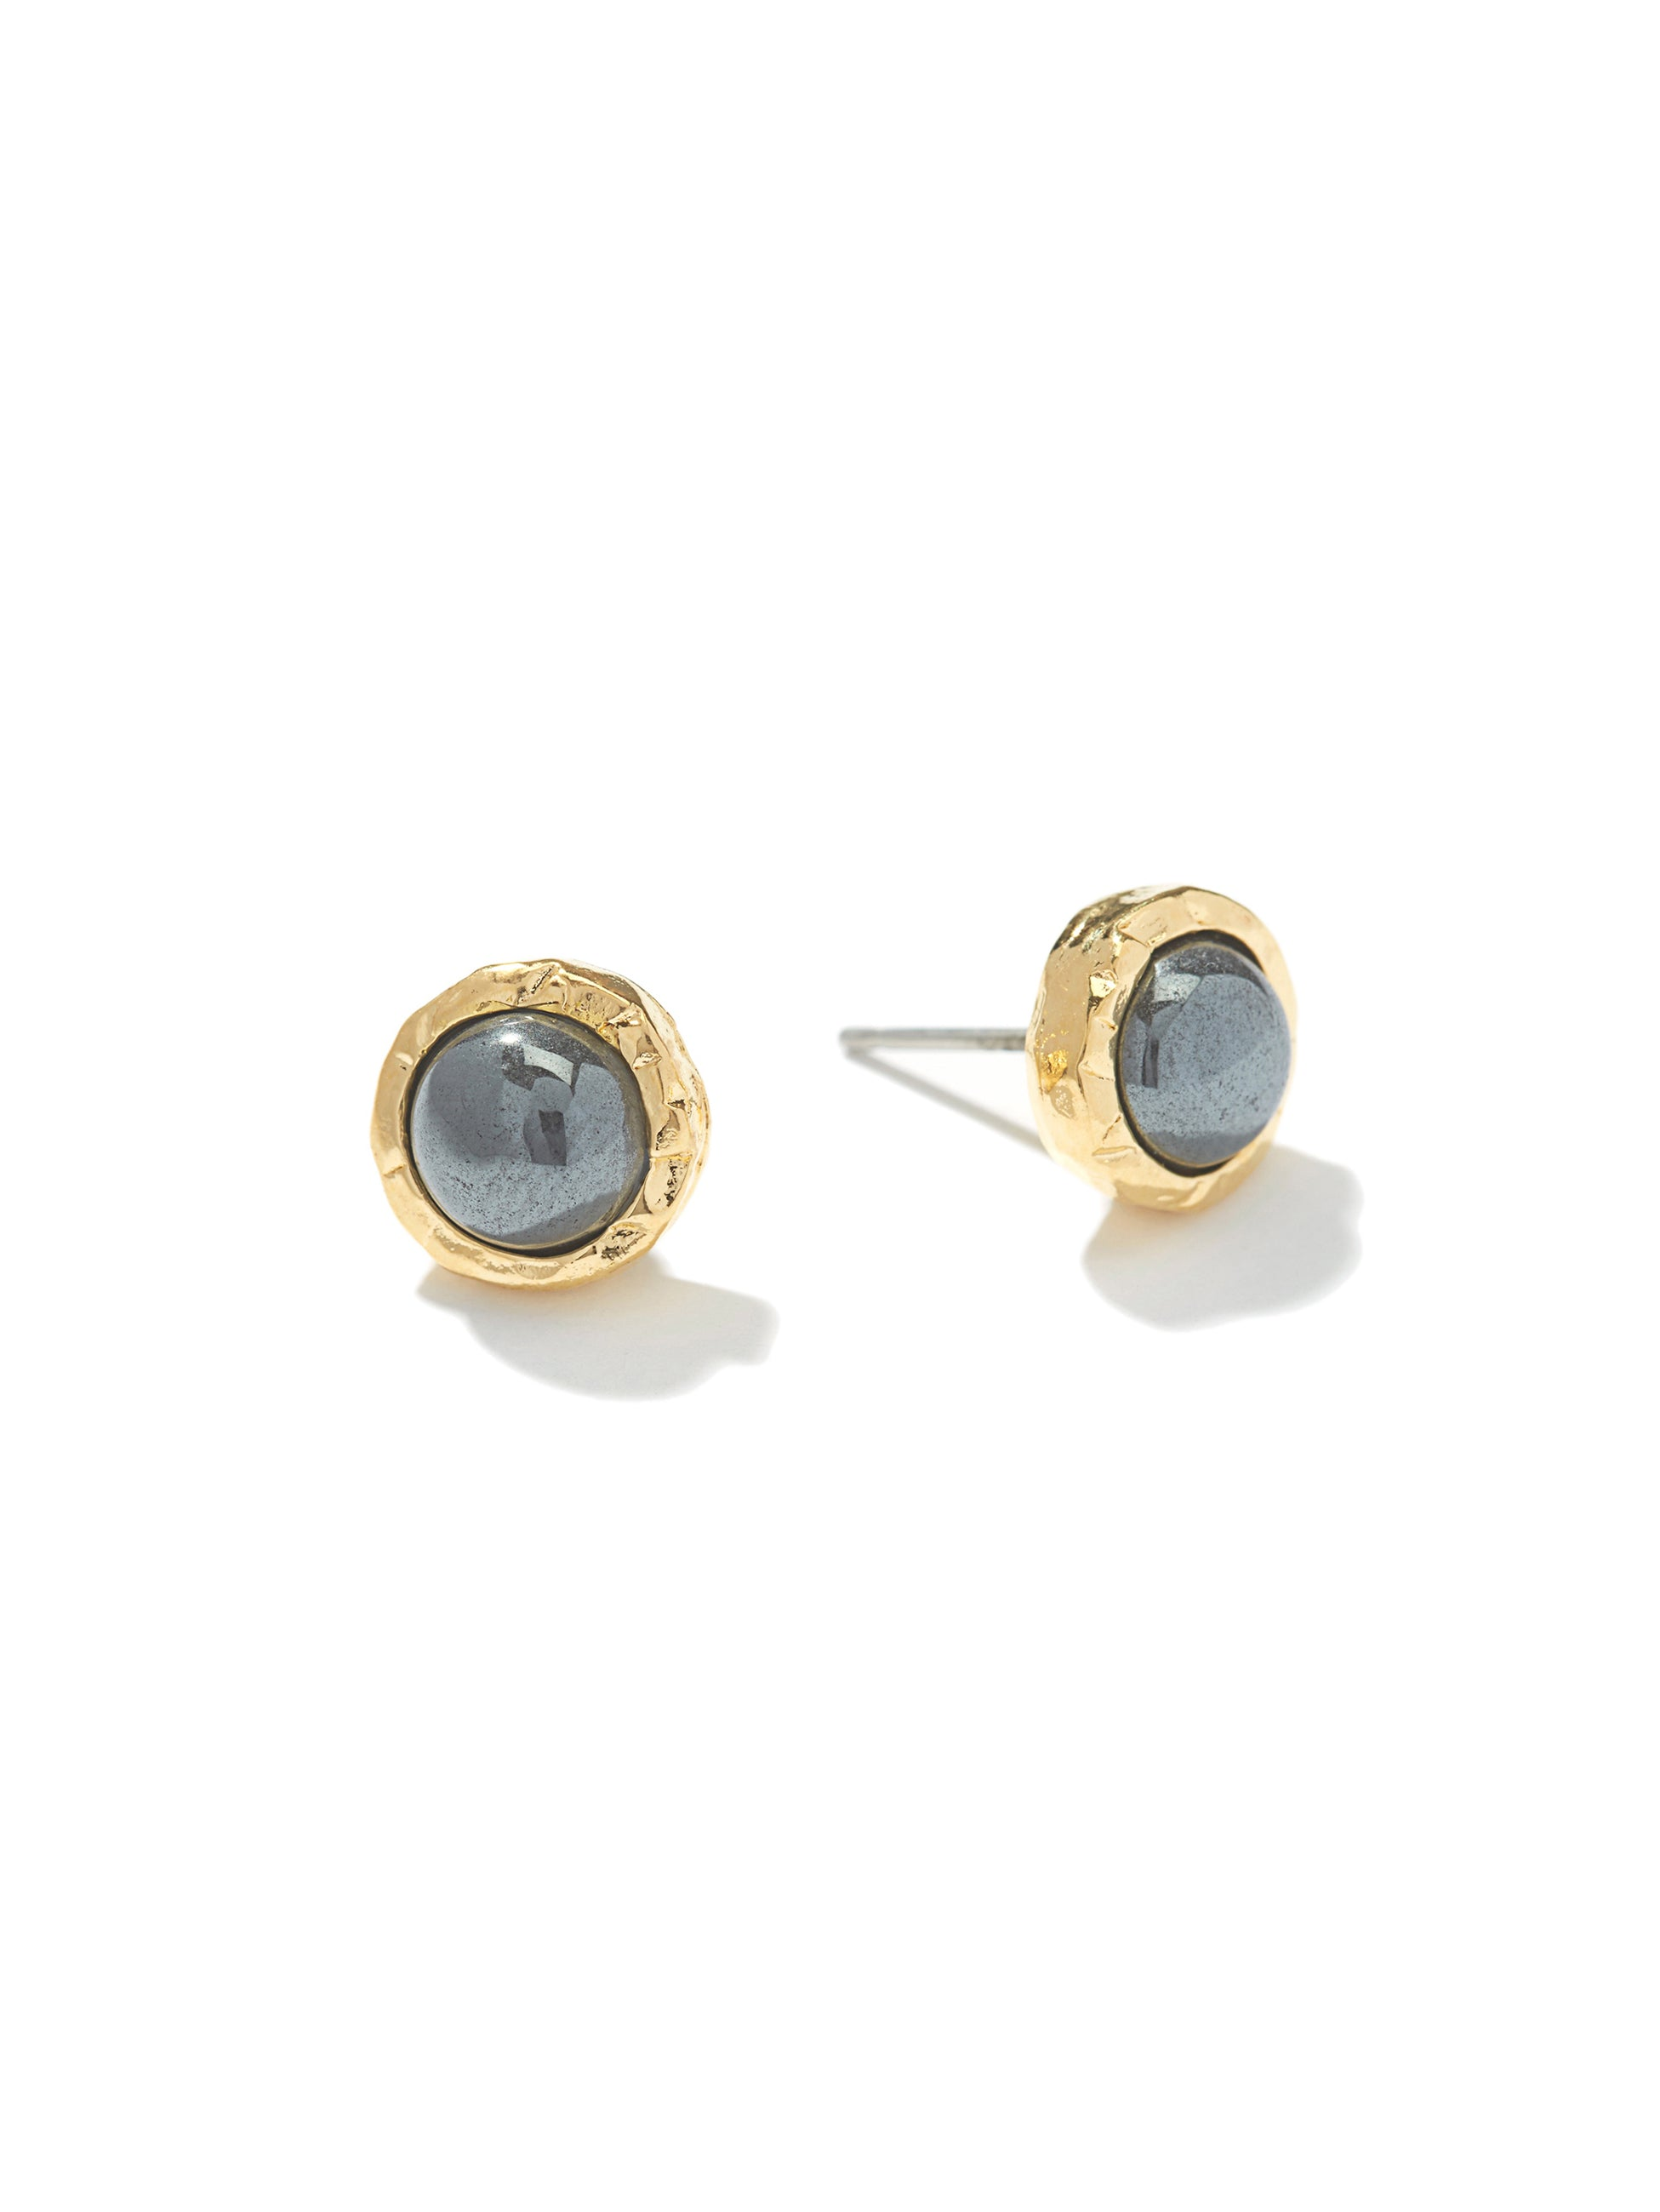 ed3575a12 Of Mercer Stud Earrings Accessory. Previous; Next